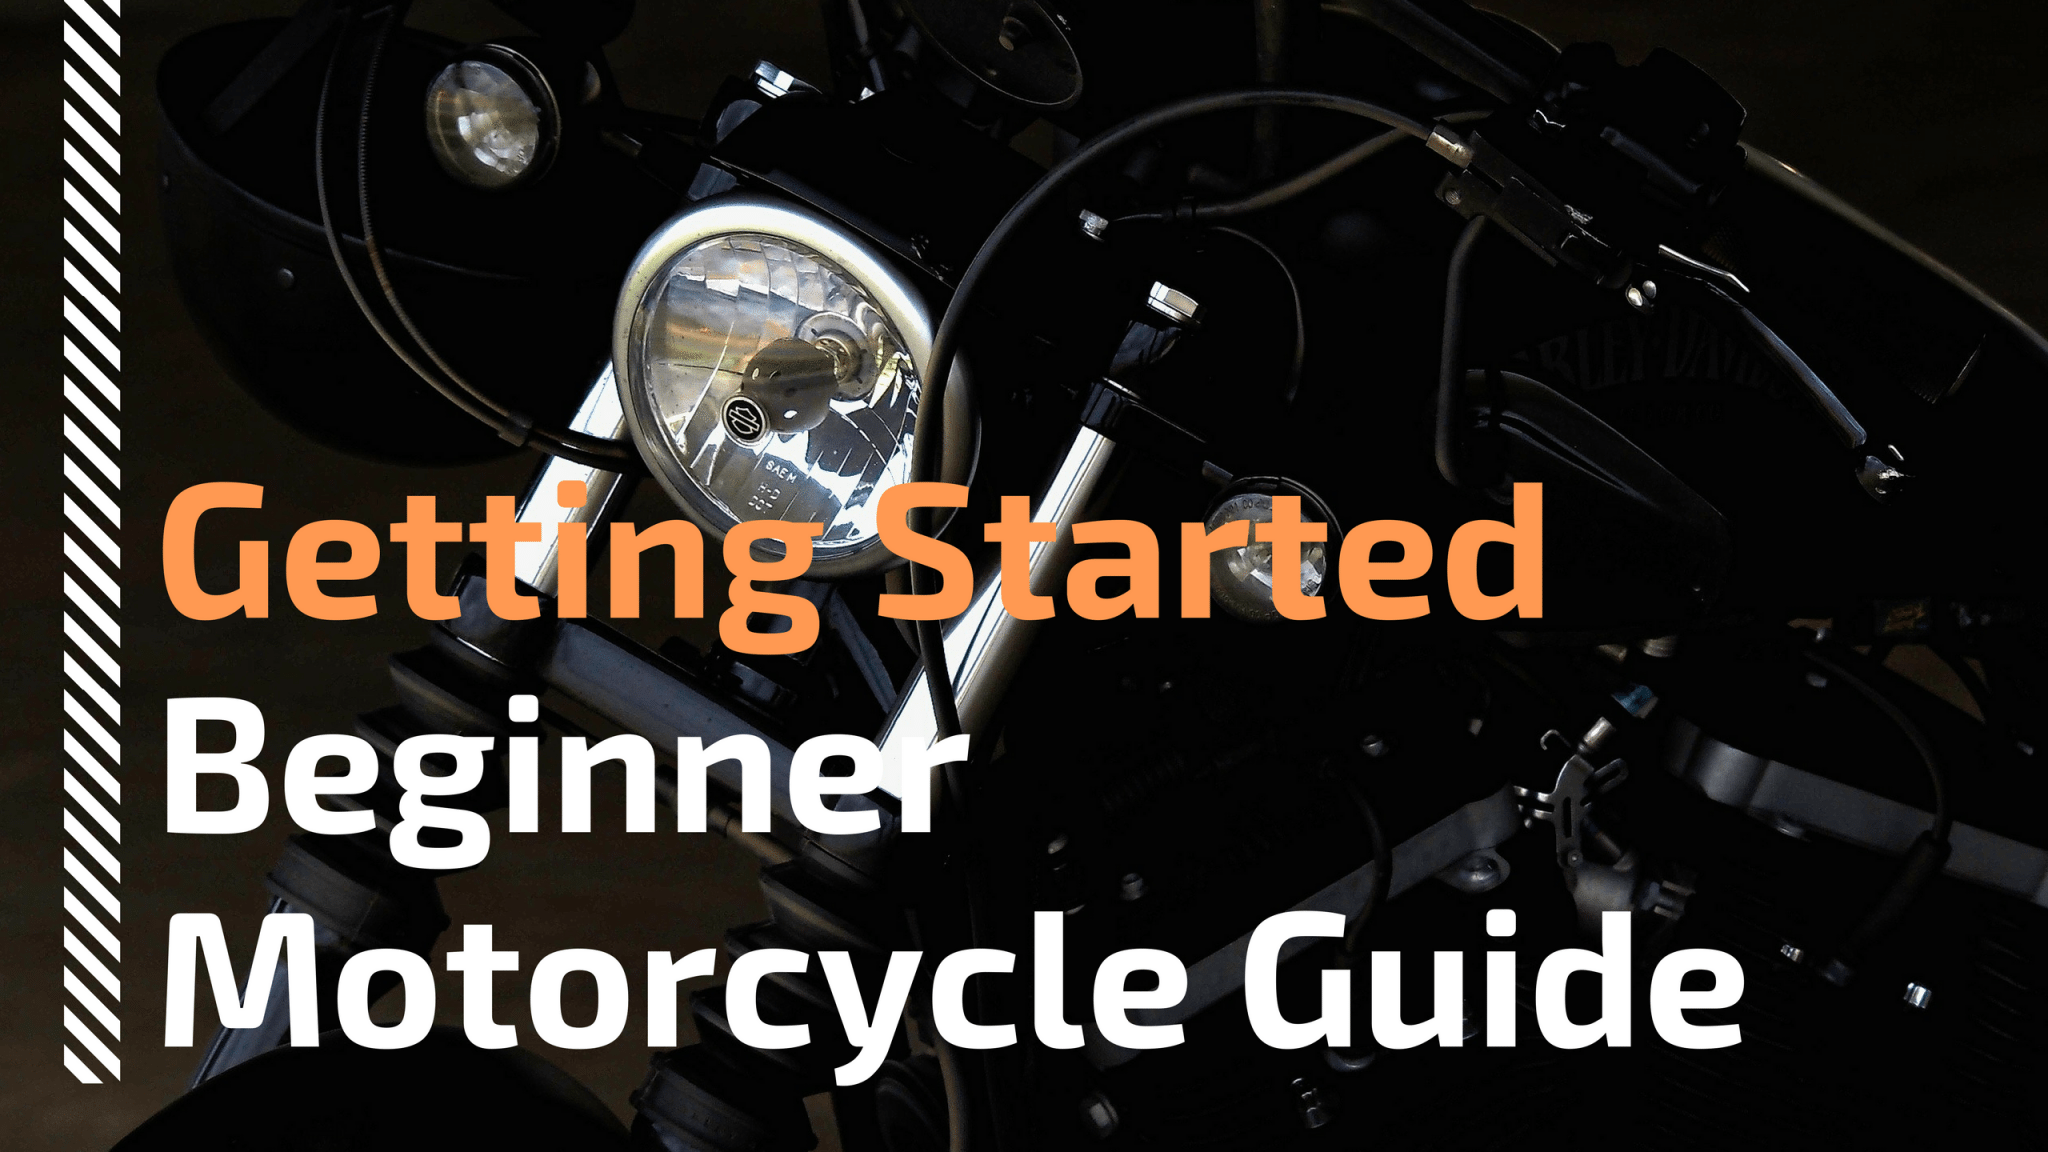 Getting started beginner motorcycle guide